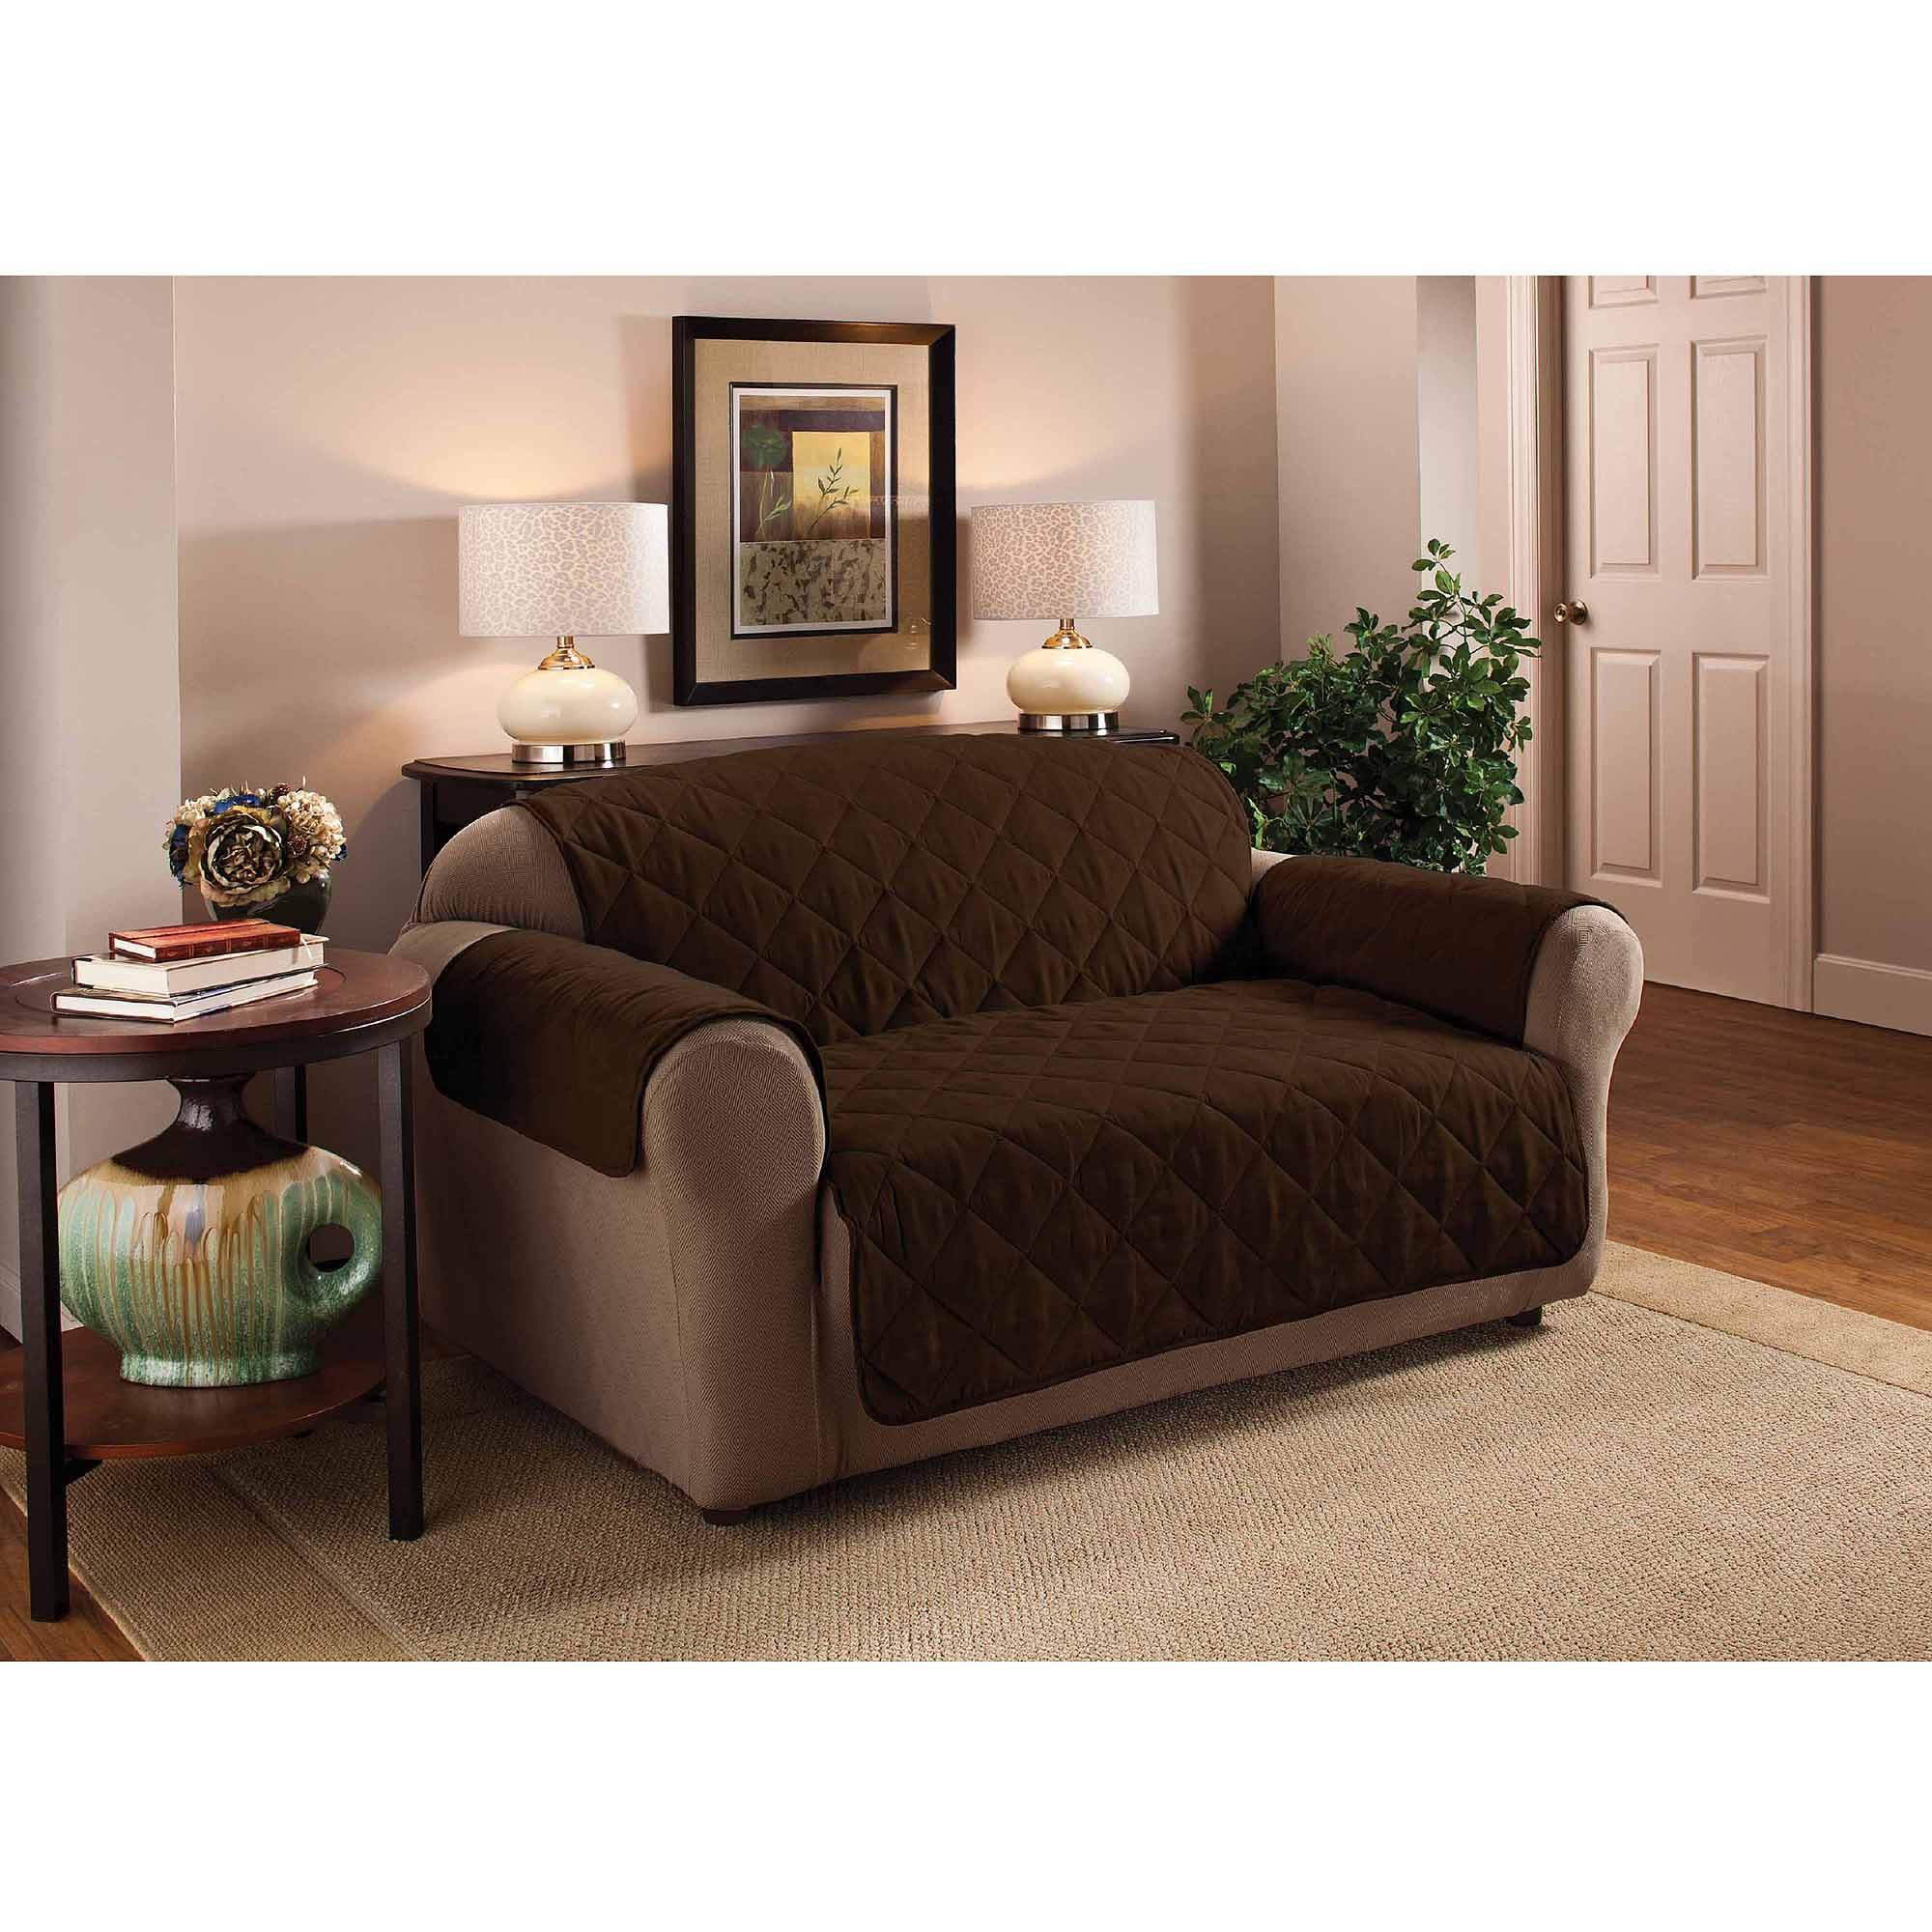 "FURNITURE PROTECTOR DOUBLE SIDE CHAIR COVER 75x65"" Walmart"